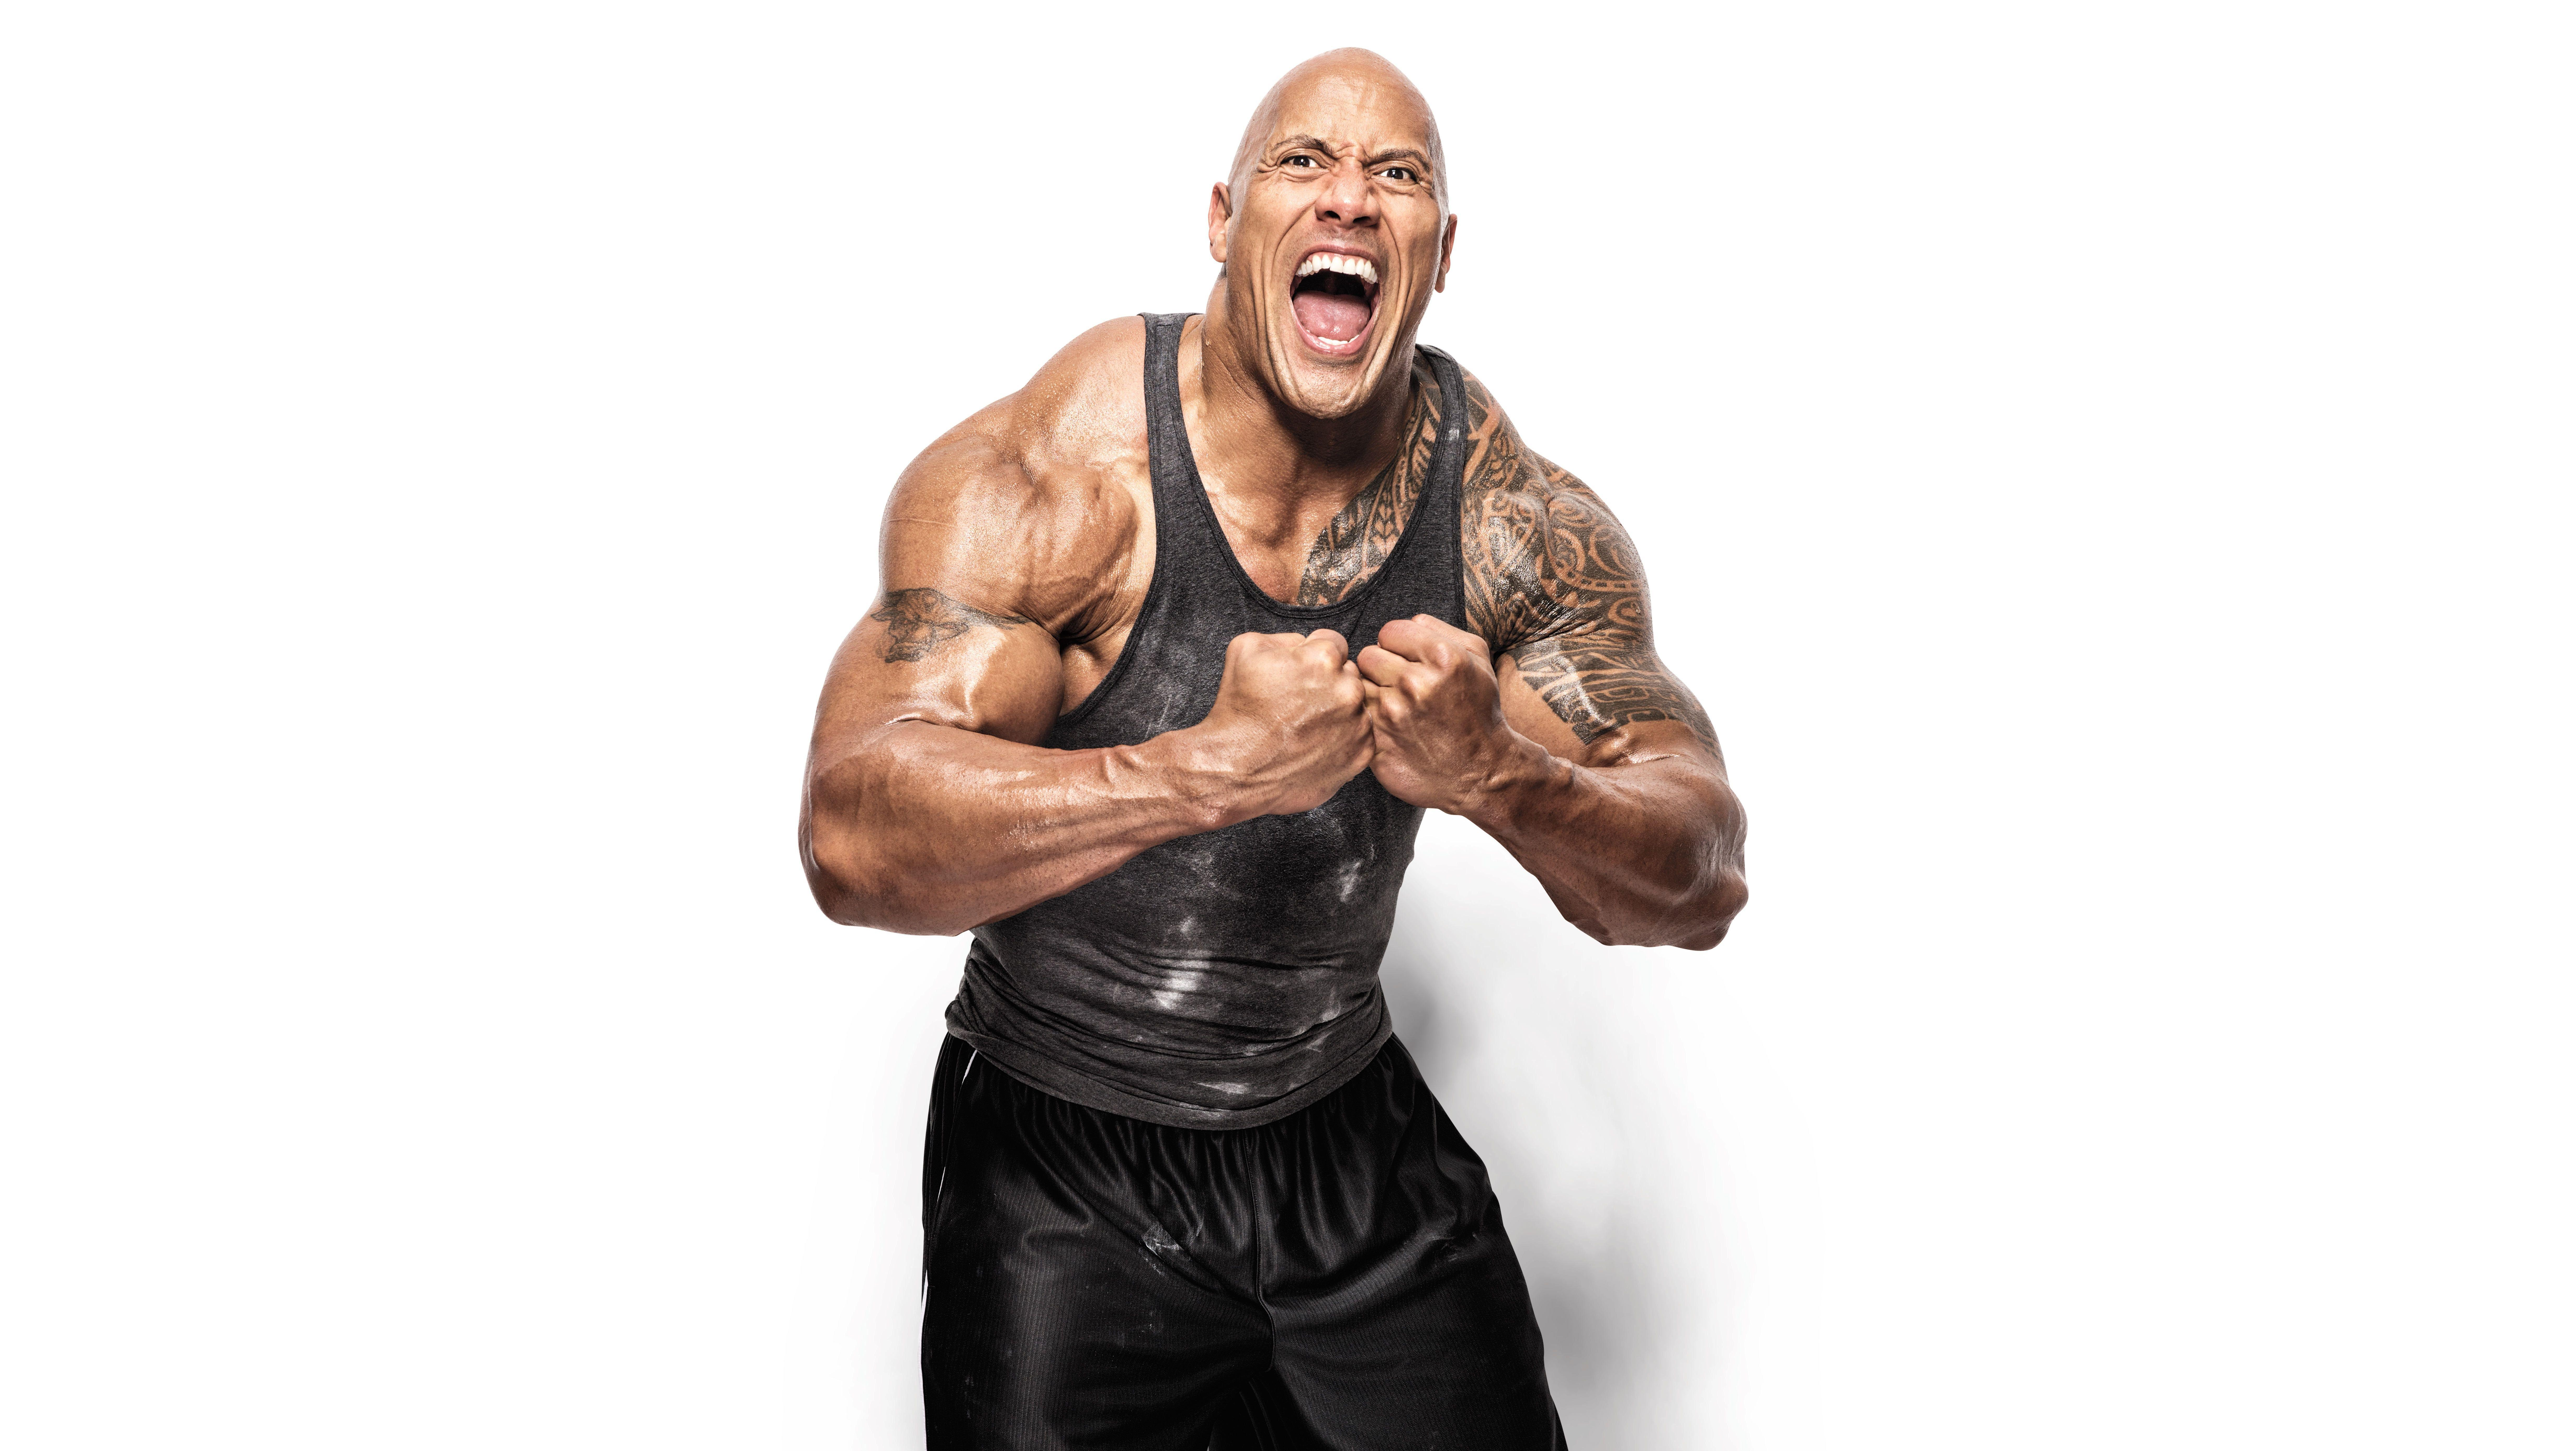 Dwayne Johnson 2017 8k, HD Celebrities, 4k Wallpapers, Image